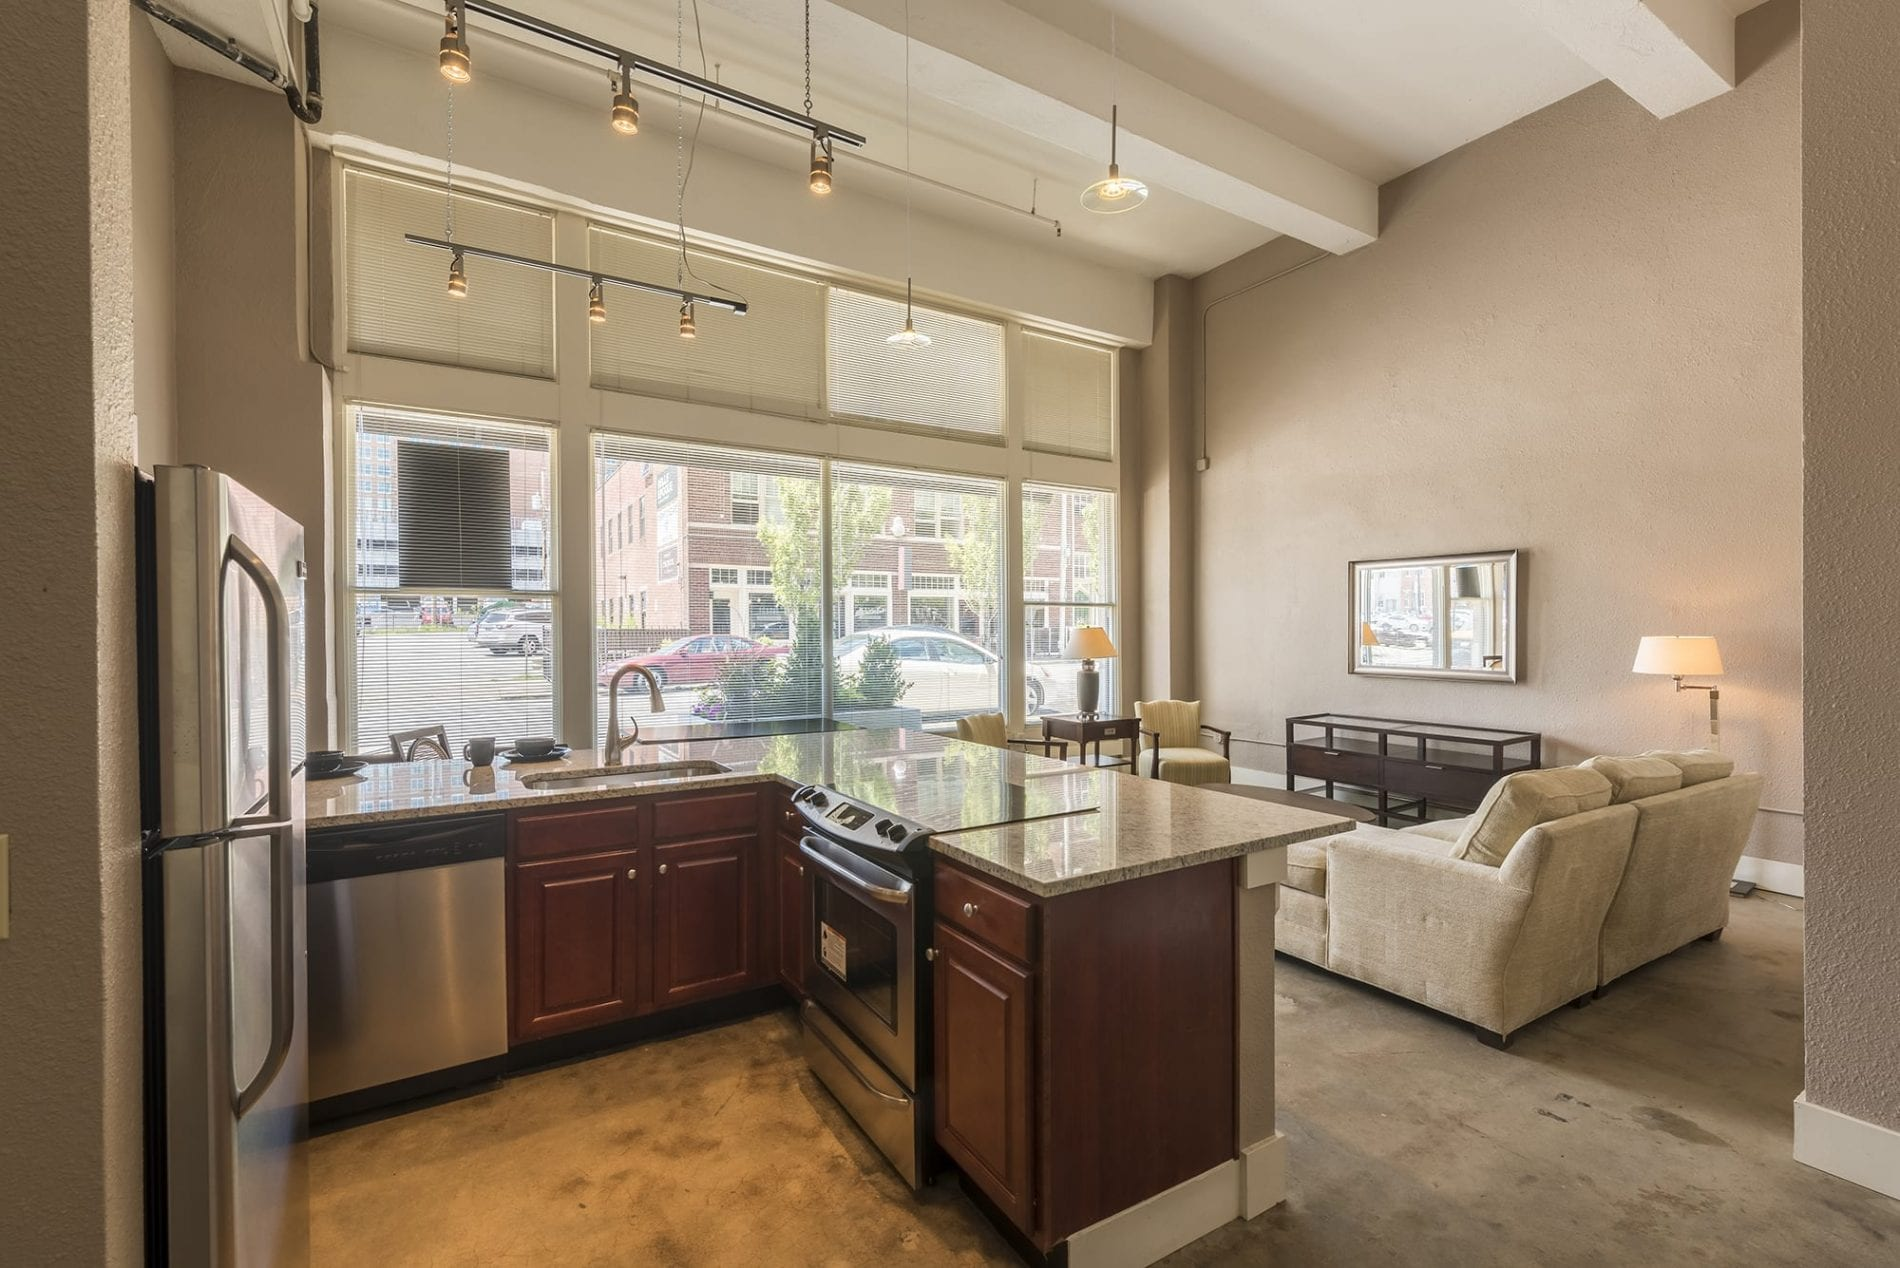 Featured For Sale Campbell Lofts 108 Kansas City Lofts